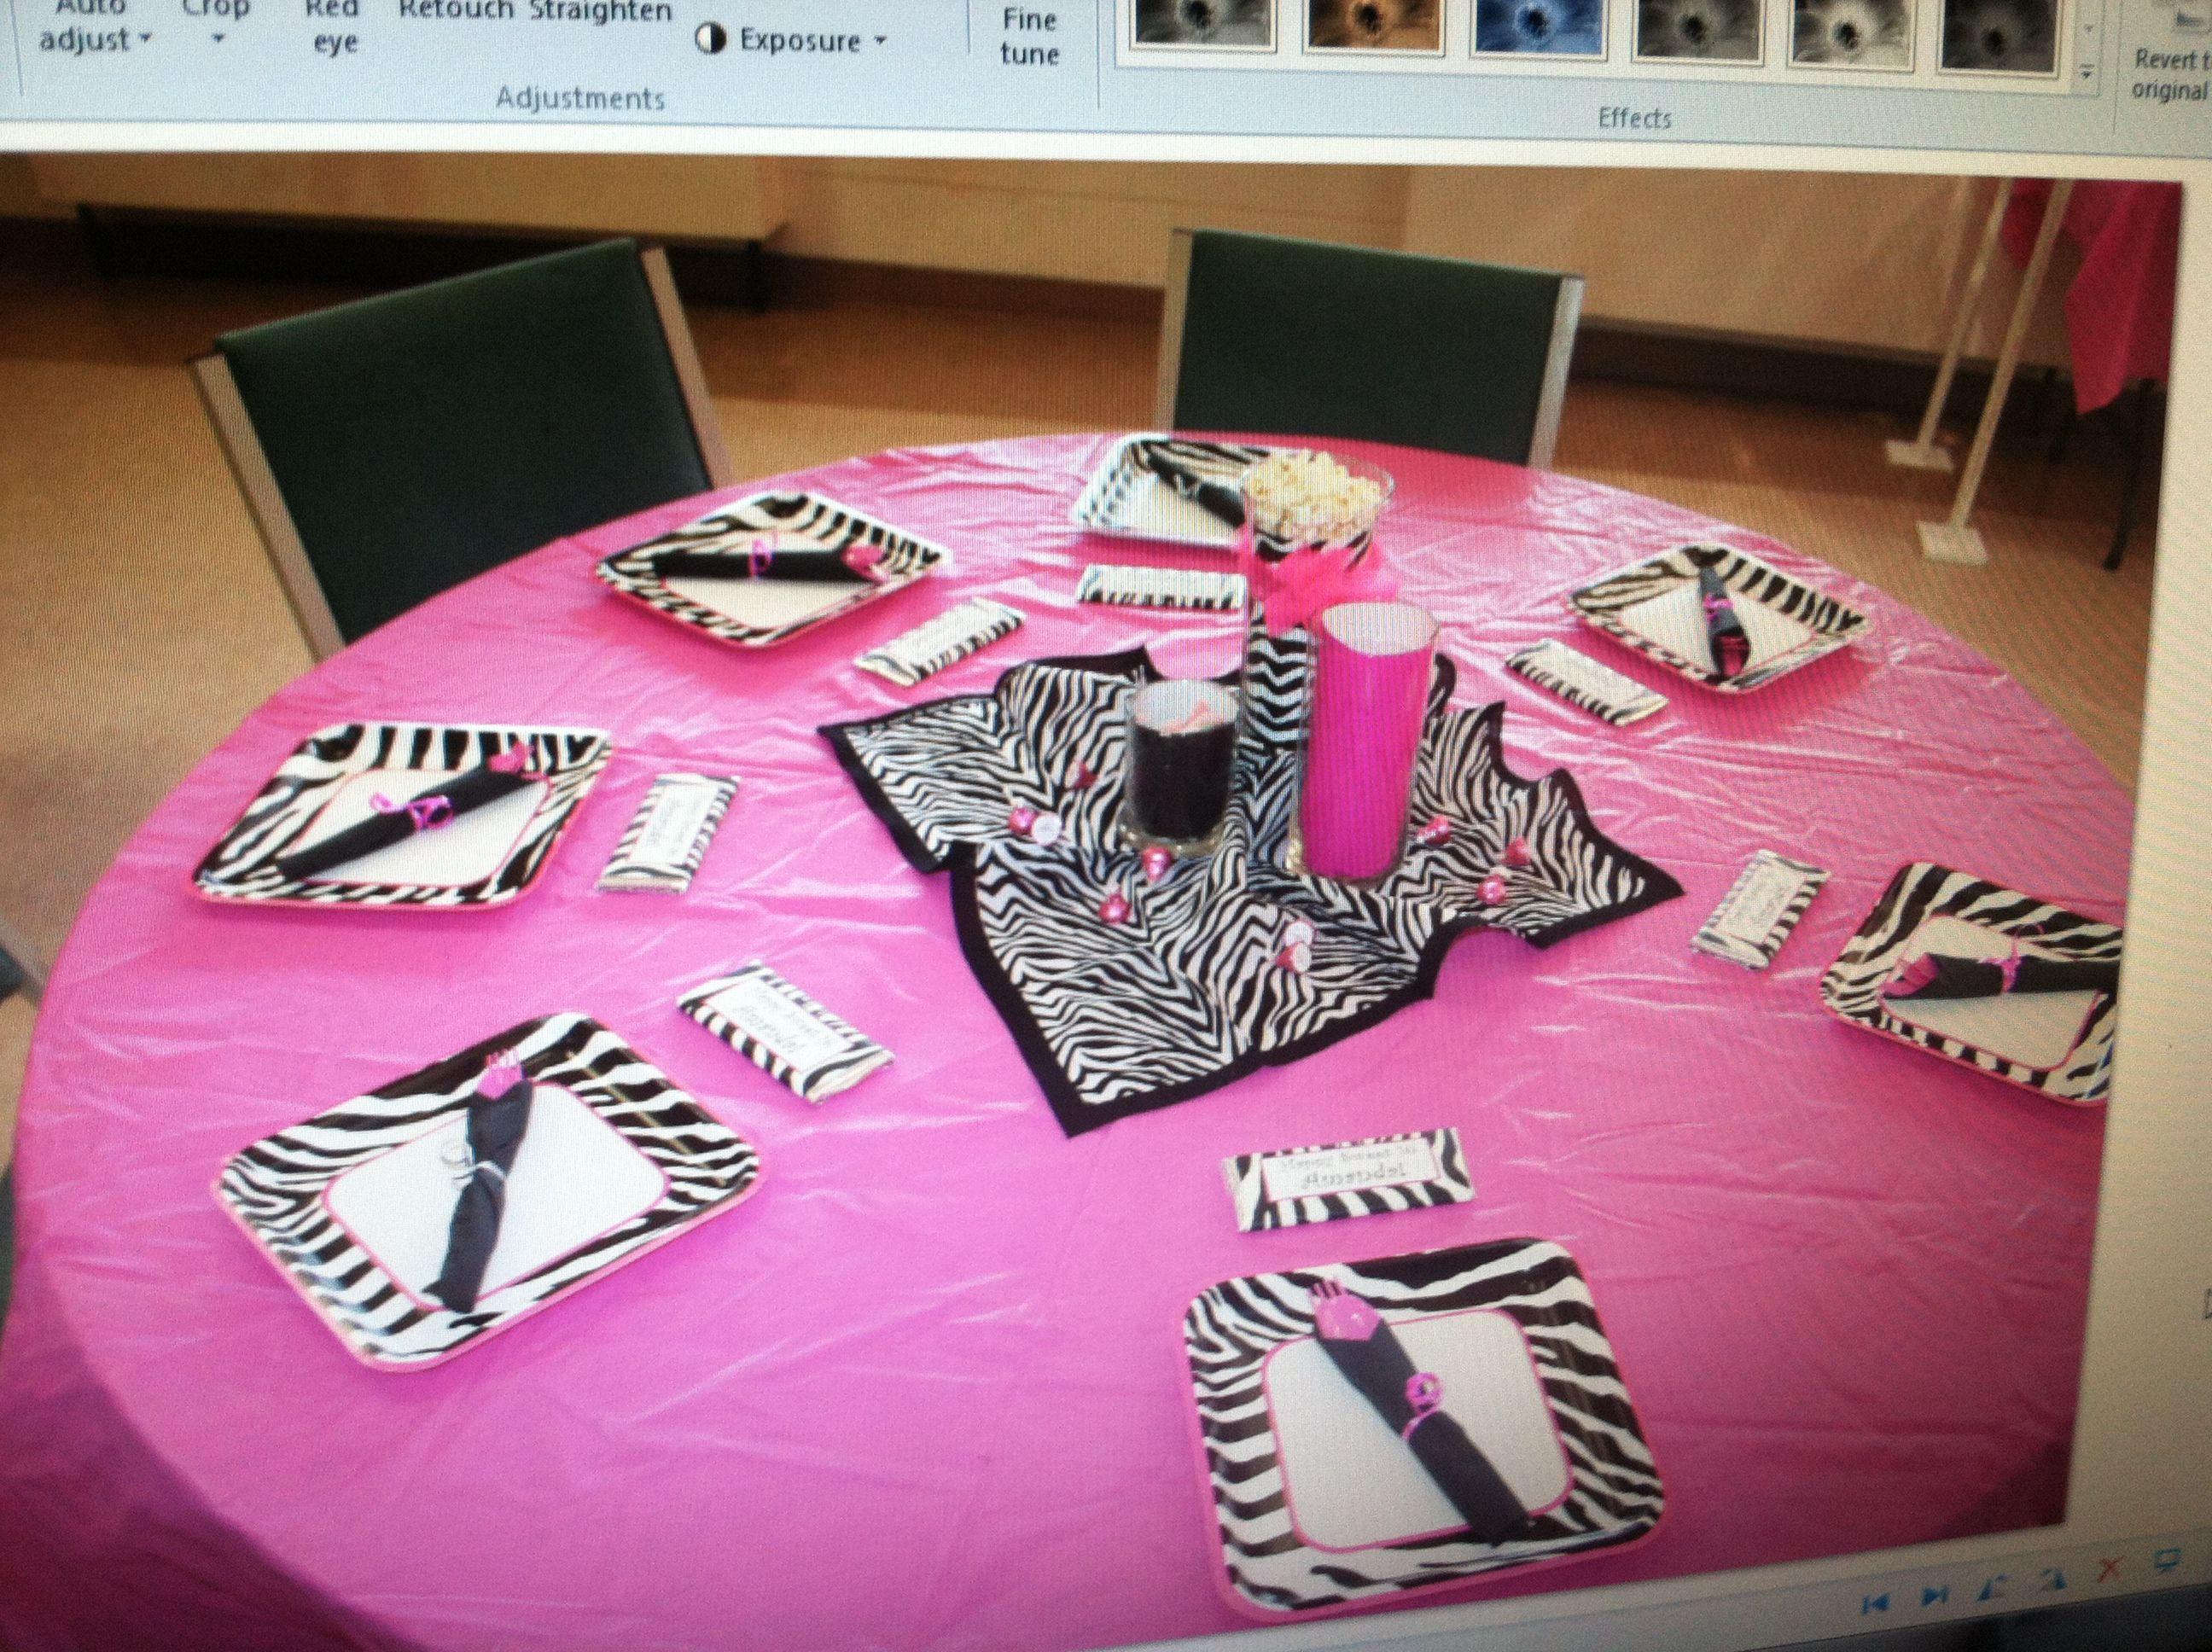 Used Hot Pink Tablecloths From Hobby Lobby Added A Zebra Print